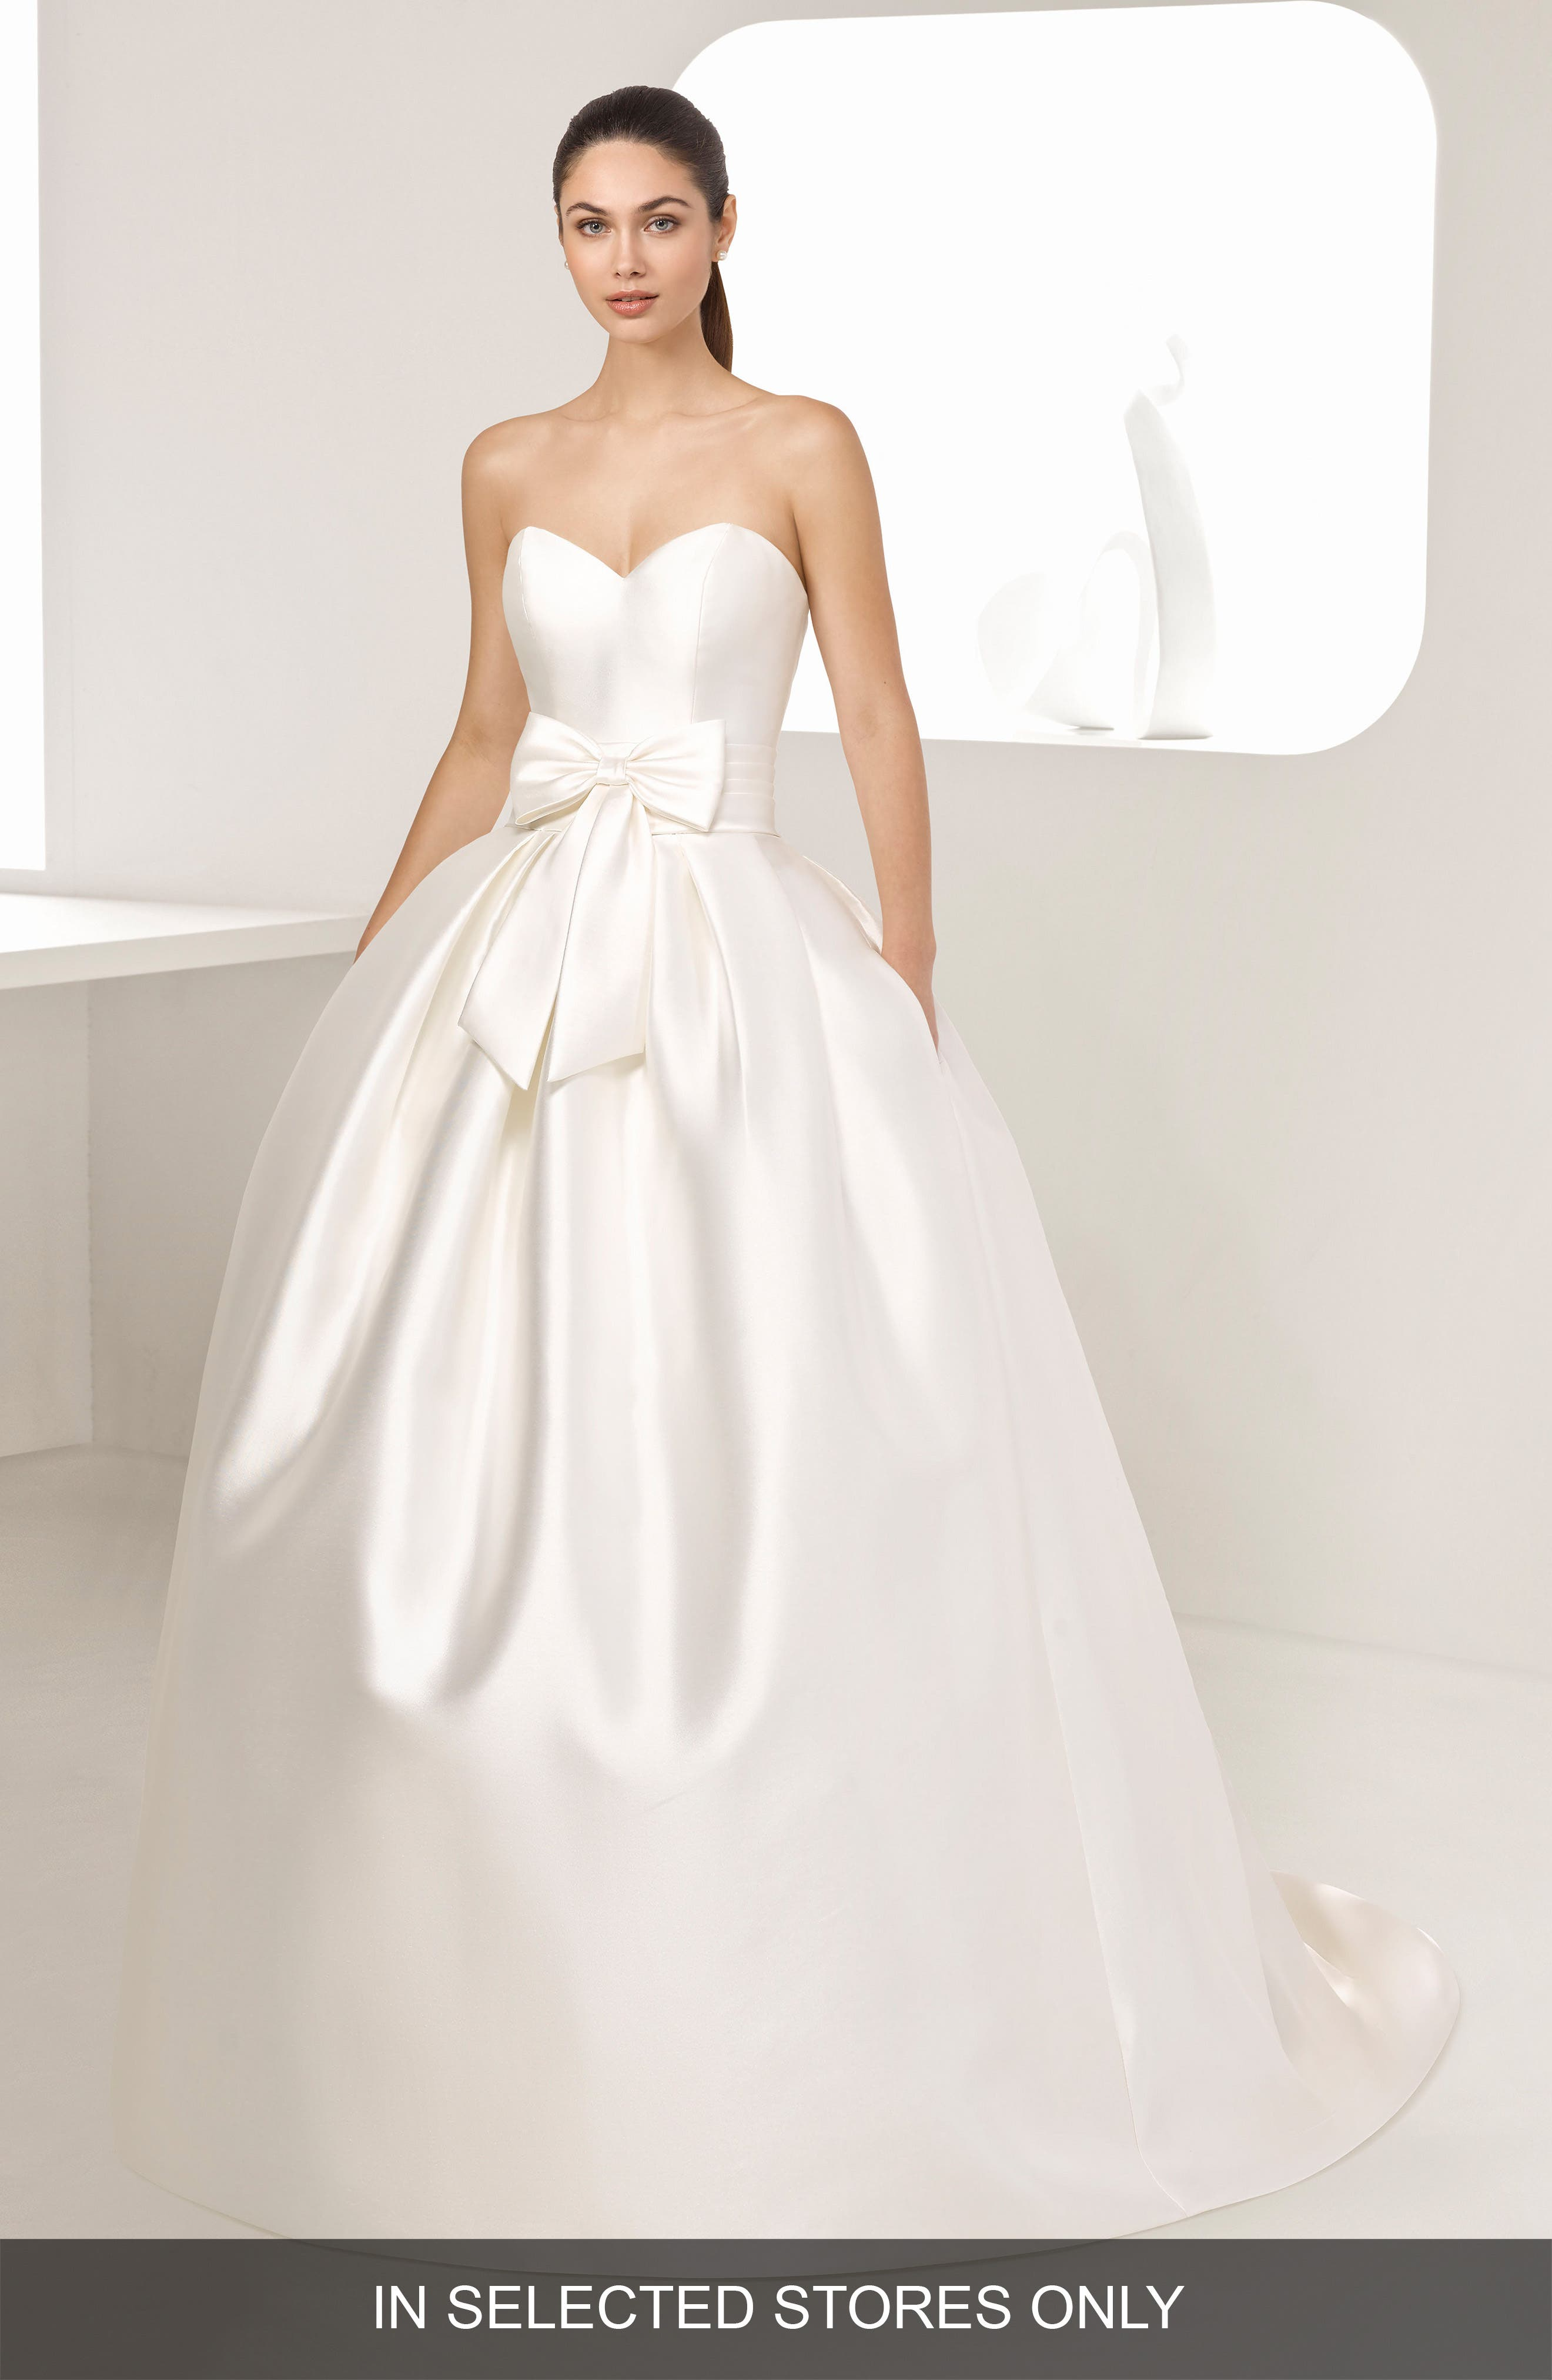 Enebro Strapless Mikado Gown,                             Main thumbnail 1, color,                             250